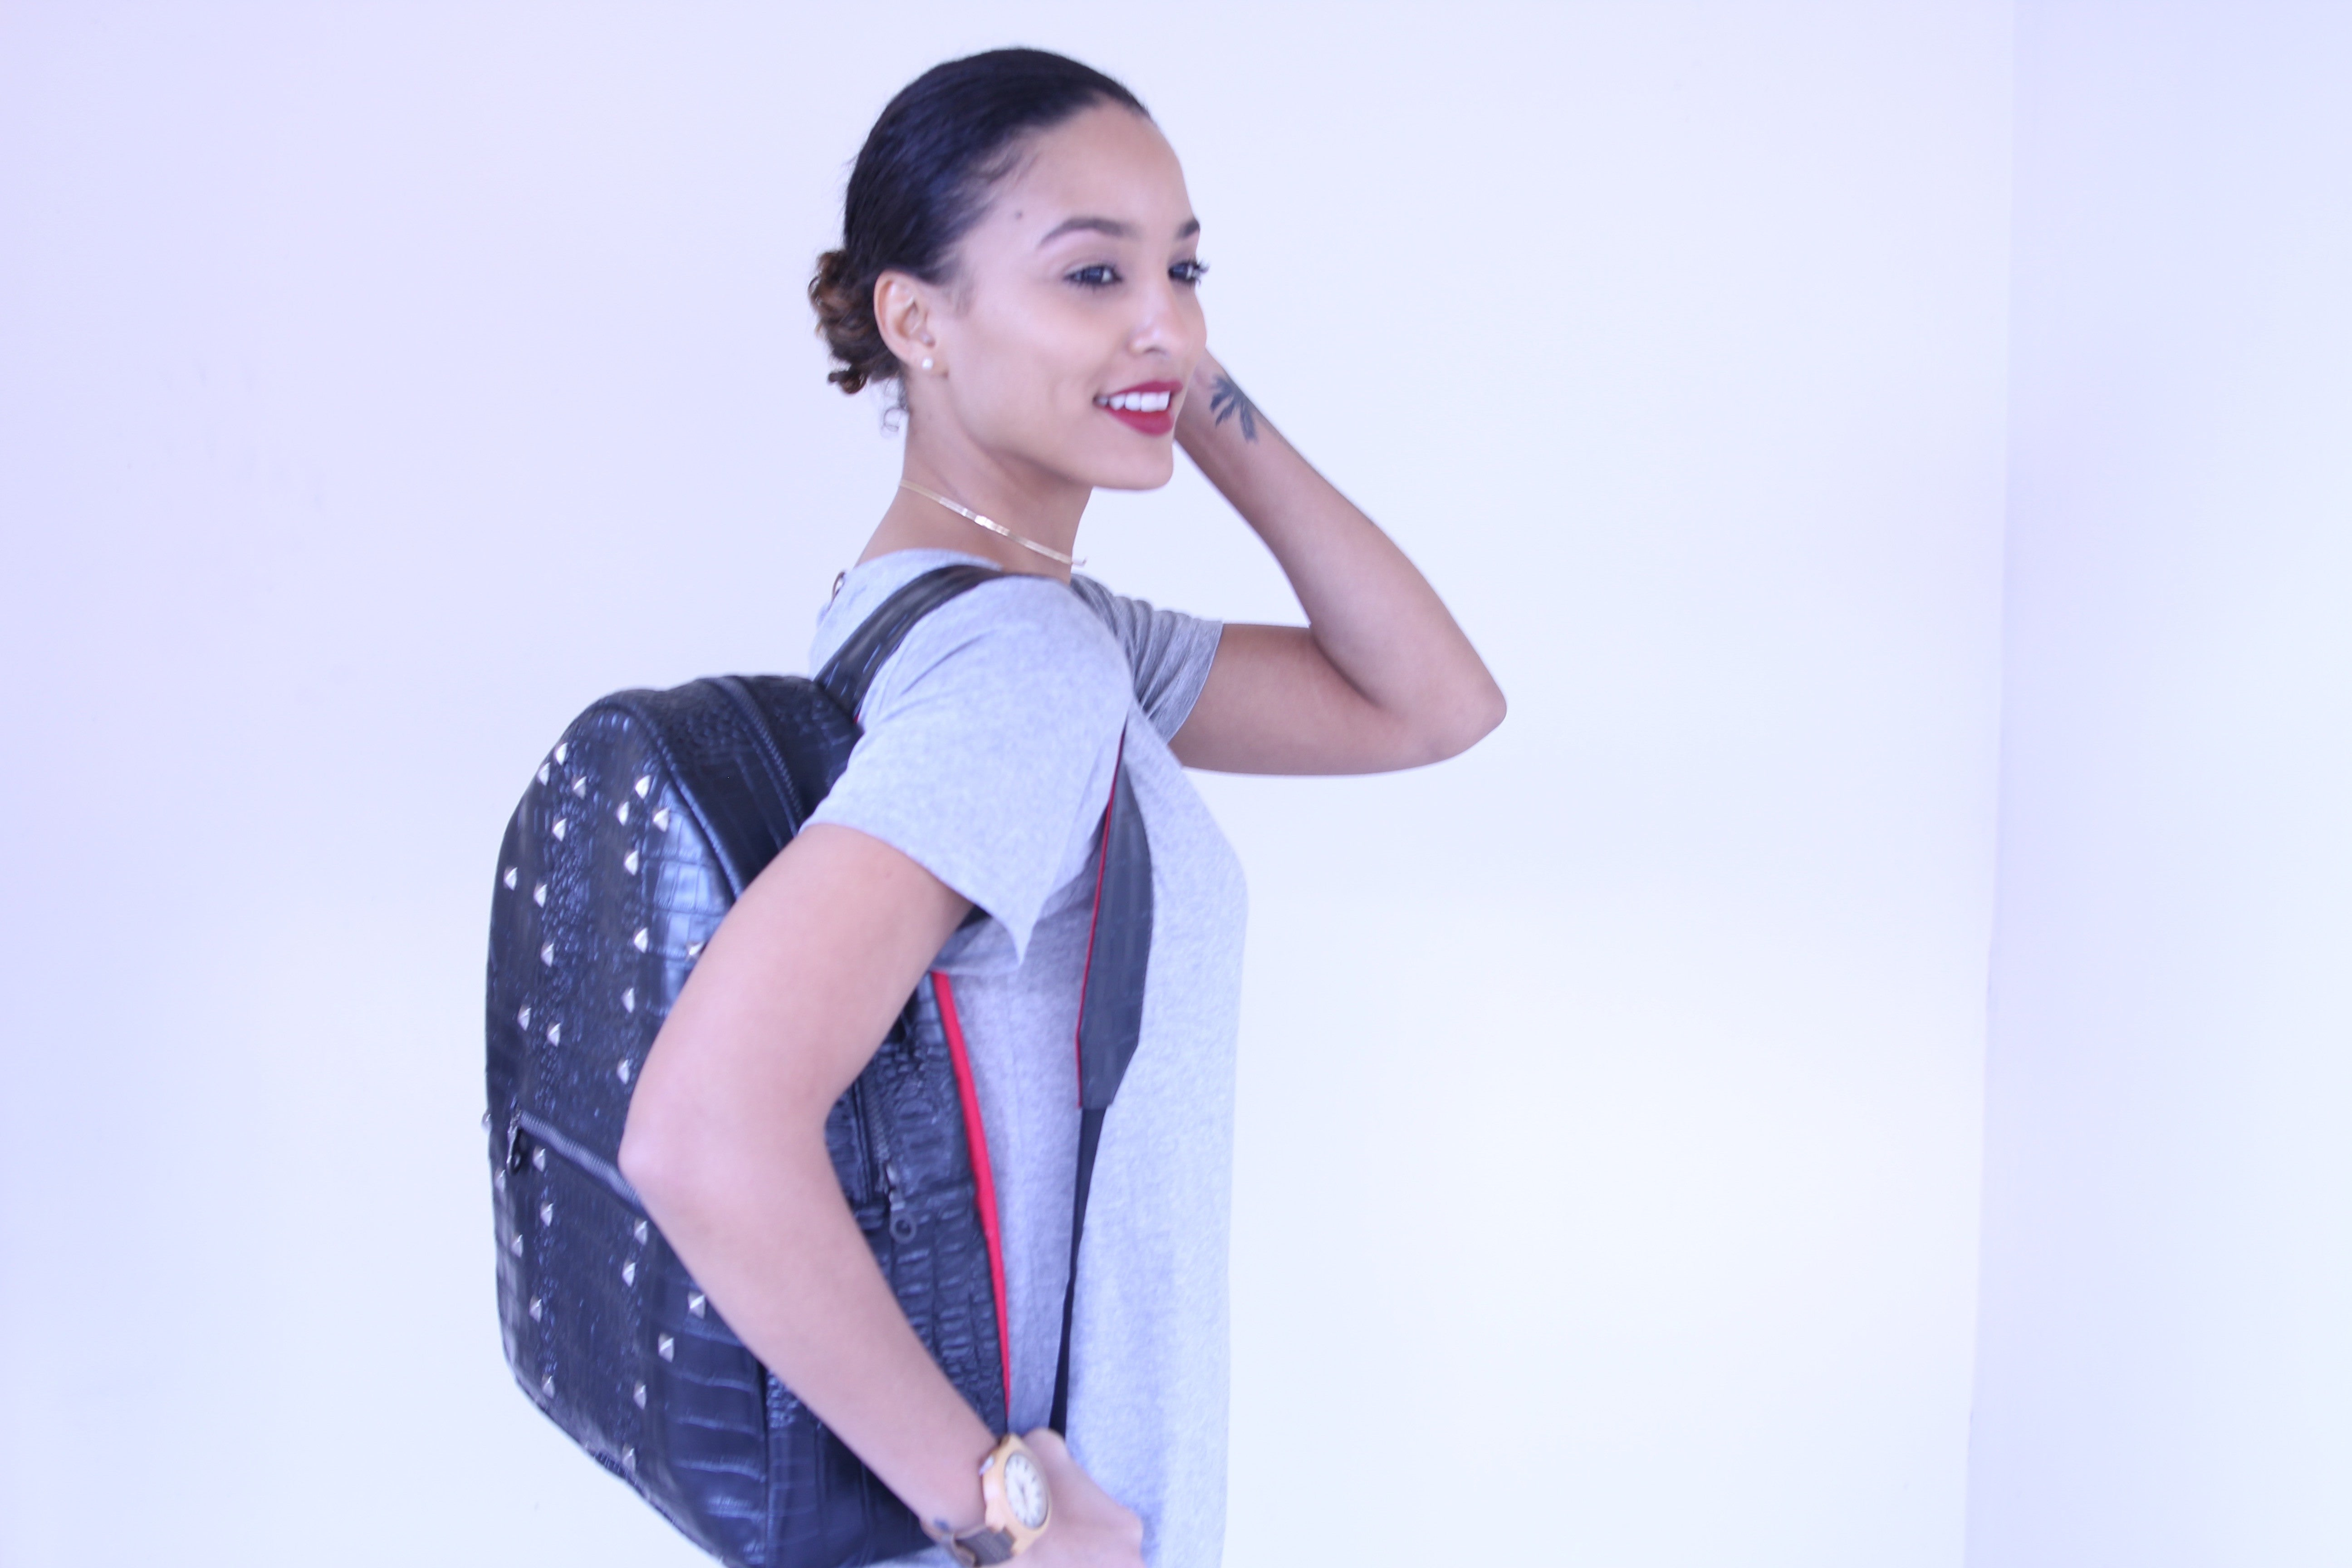 VINTAGE STYLE BACKPACK (NO OMOS; LARGE)